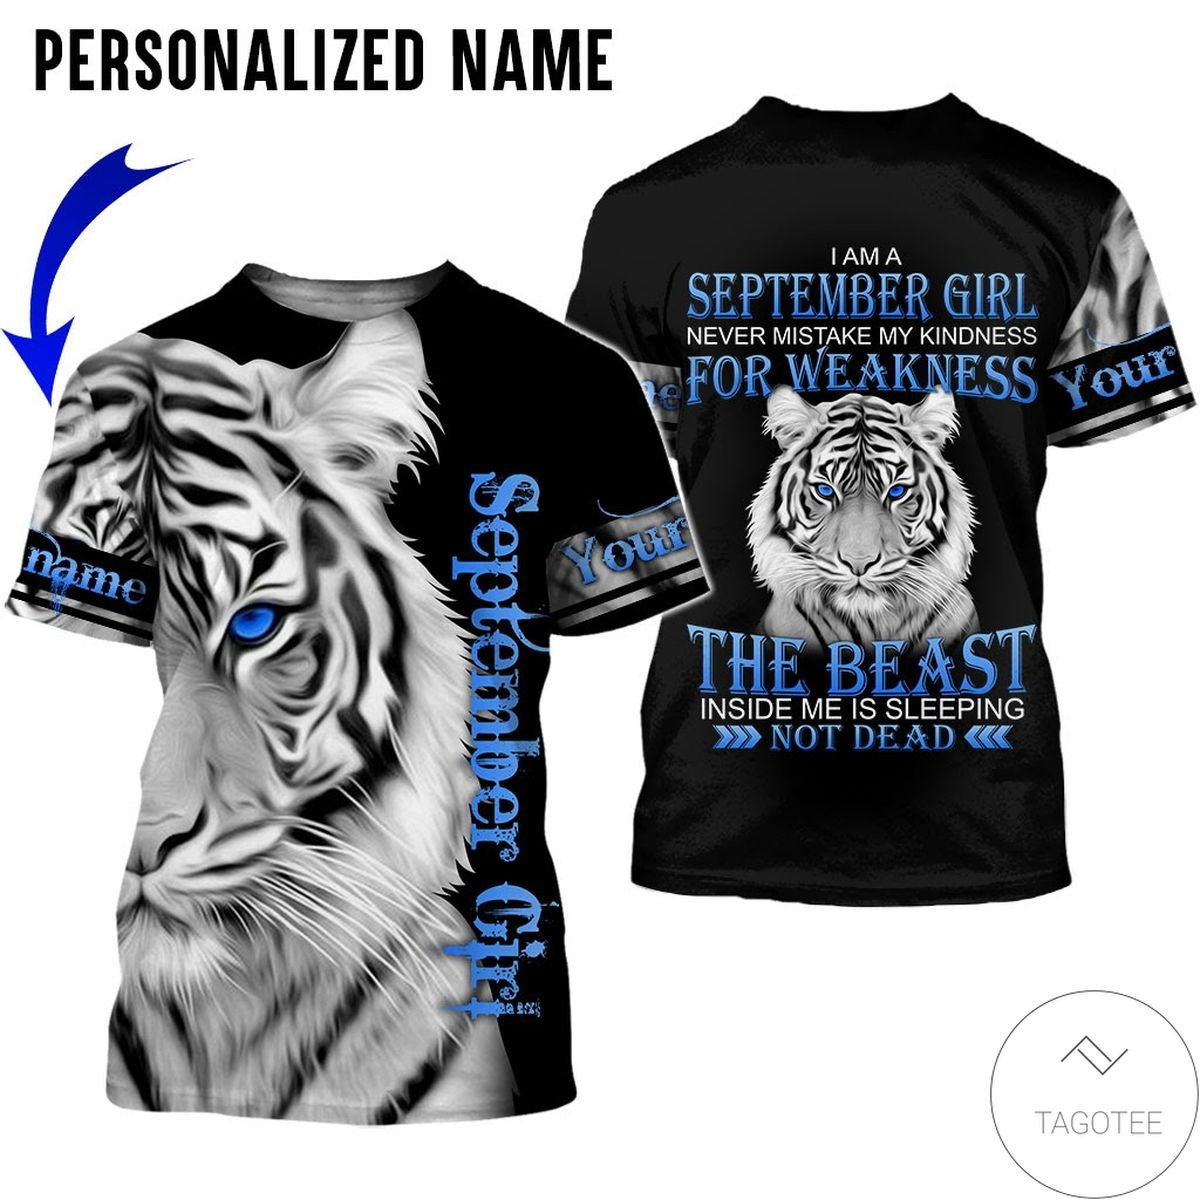 3D Personalized Name Tiger September Girl The Beast Not Dead All Over Print Hoodie